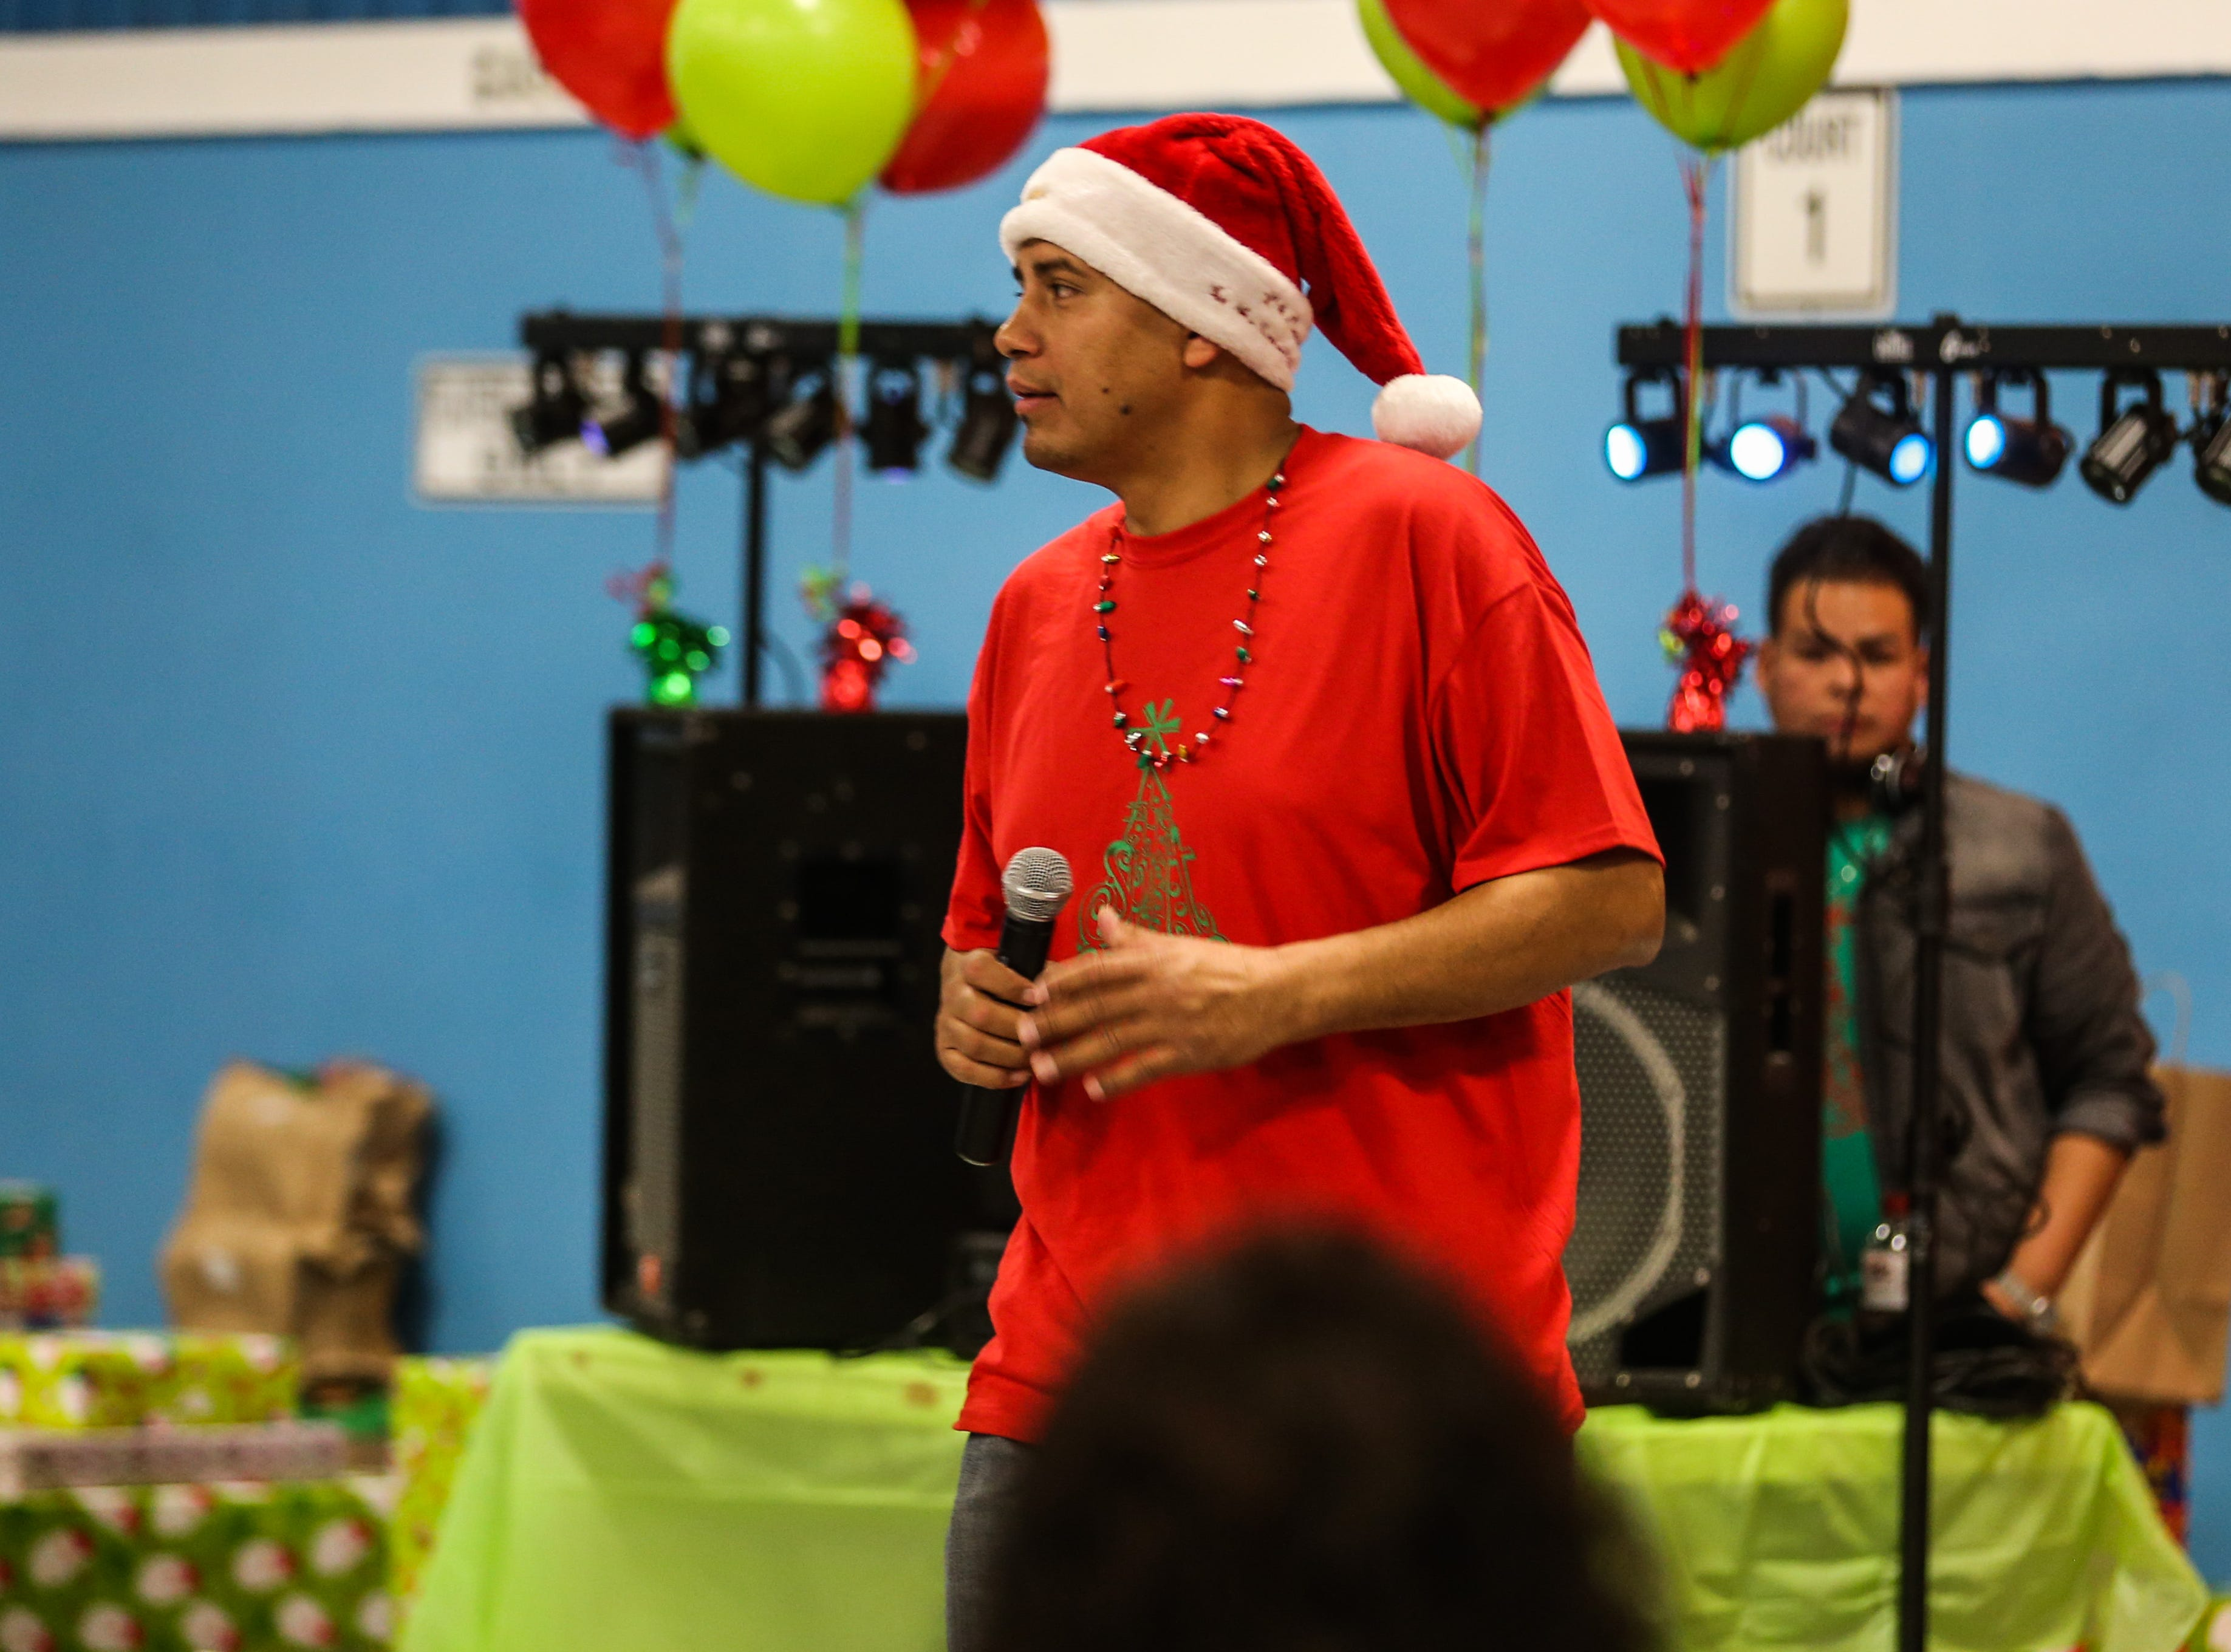 Osvaldo Martinez gets the kids ready for dance contests during the In the Spirit of Christmas party Saturday, Dec. 15, 2018, at the Southside Recreation Center.